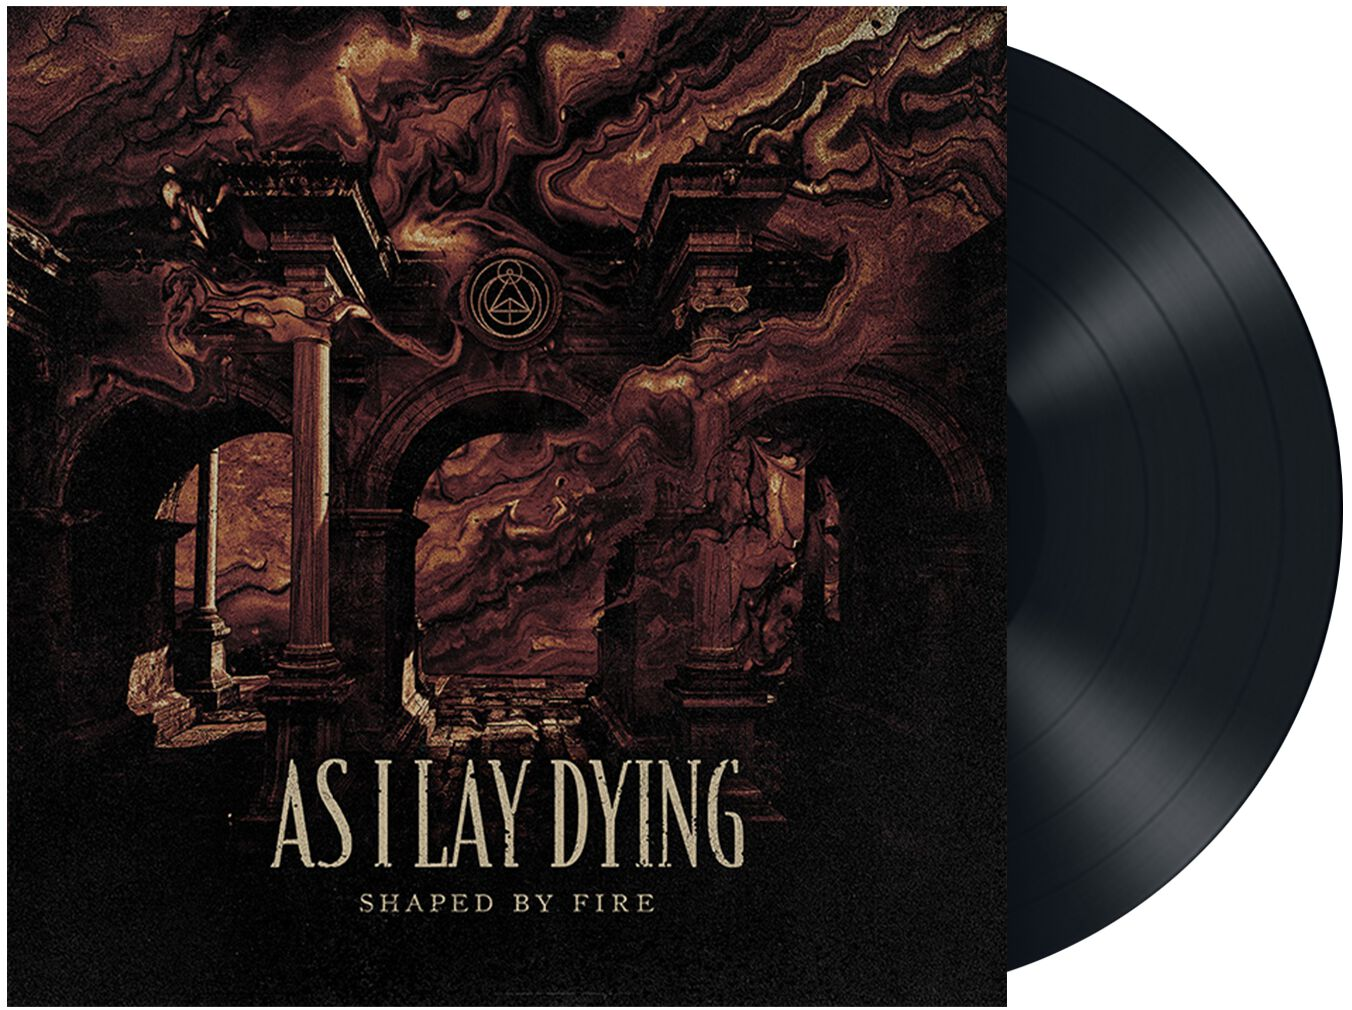 Image of As I Lay Dying Shaped by fire LP Standard